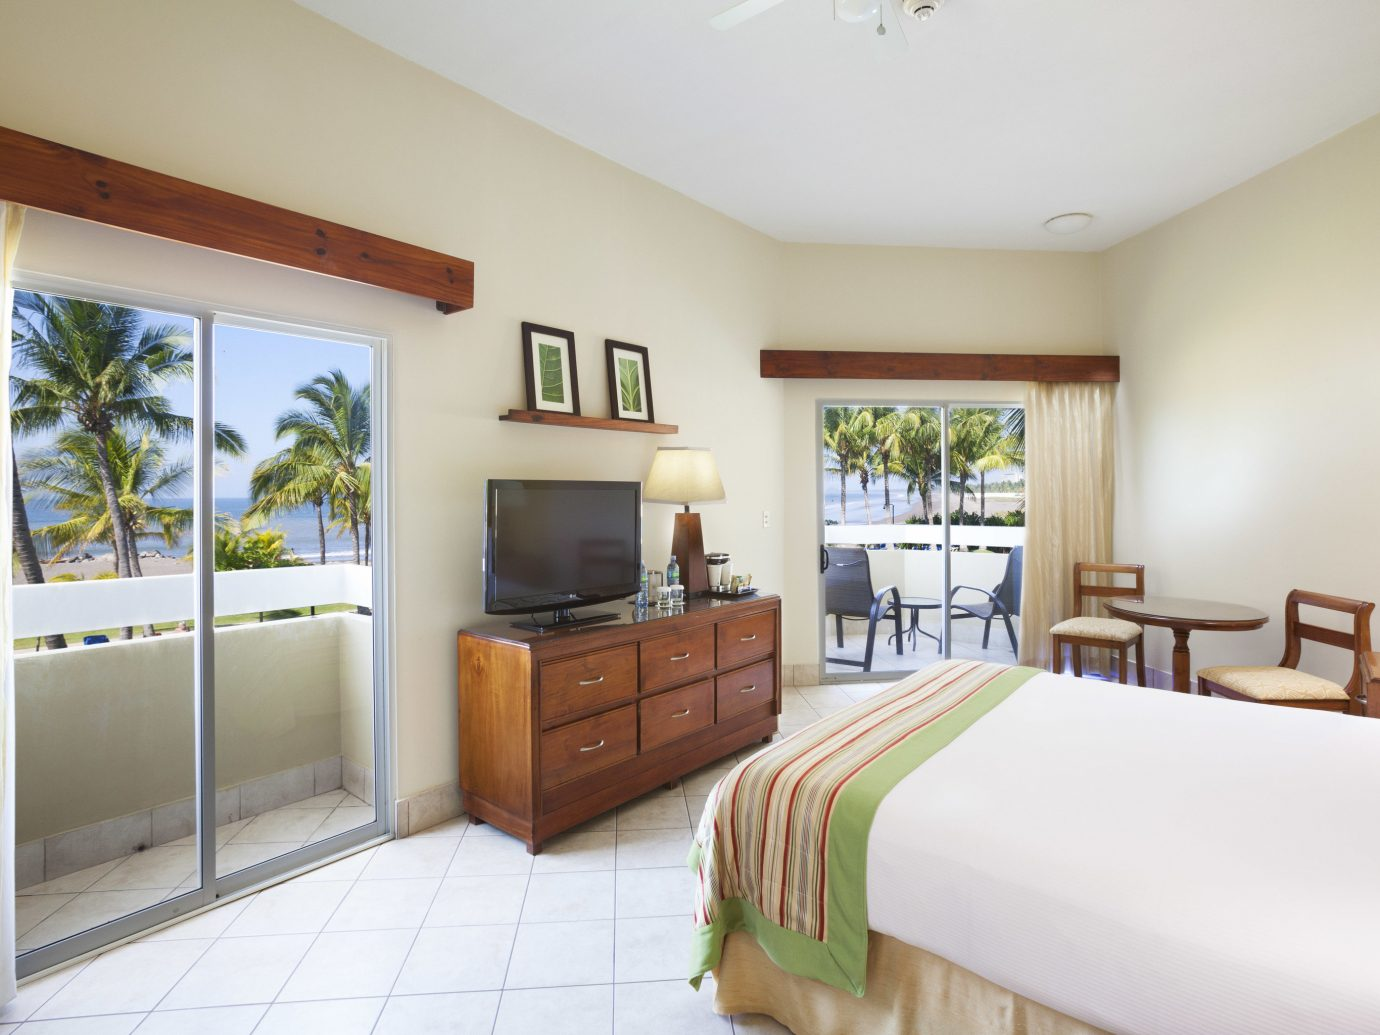 Bedroom at Doubletree Resort by Hilton Central Pacific